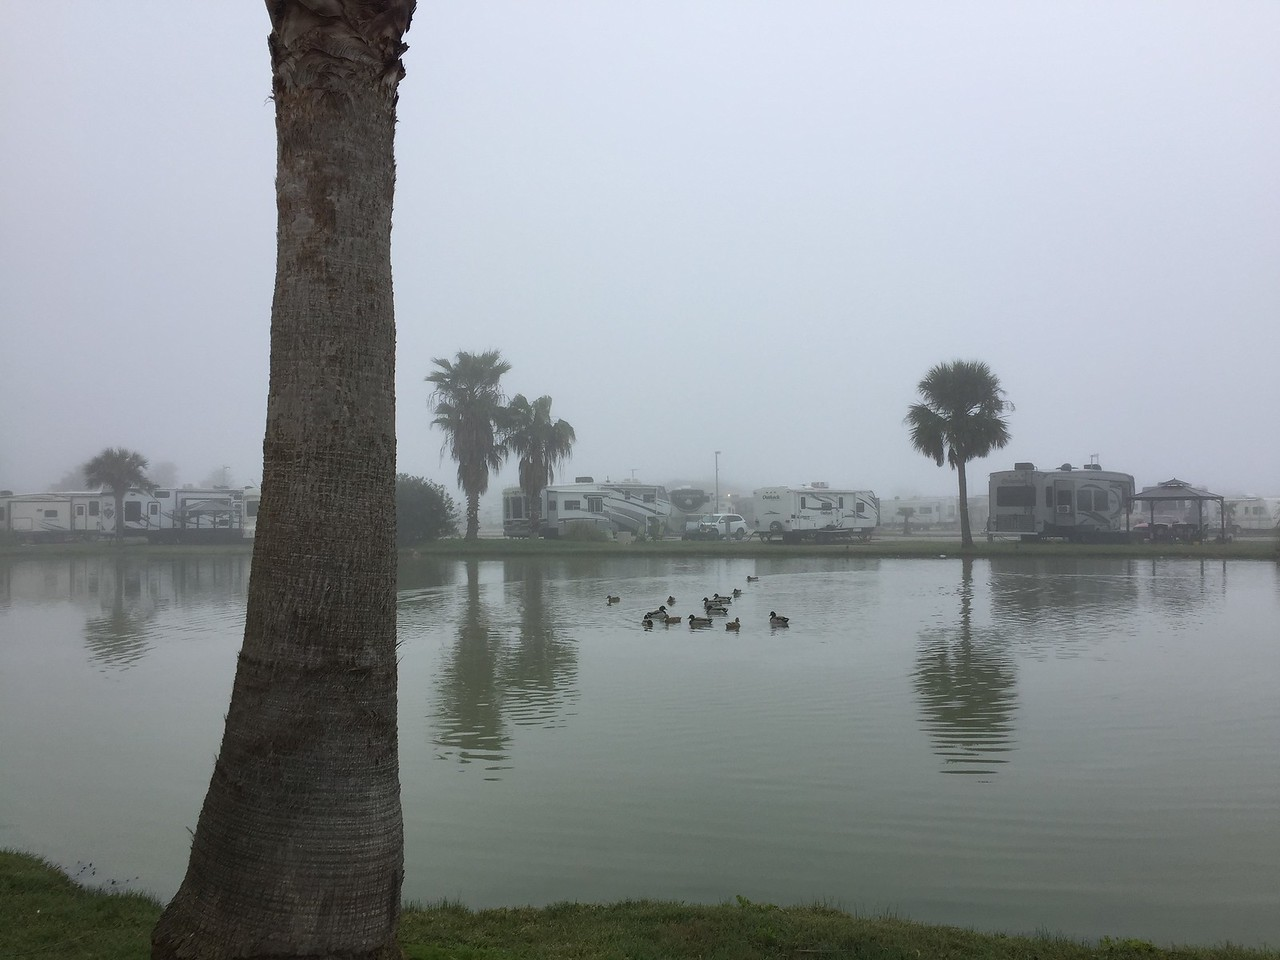 Campground Pond of a Foggy Morning